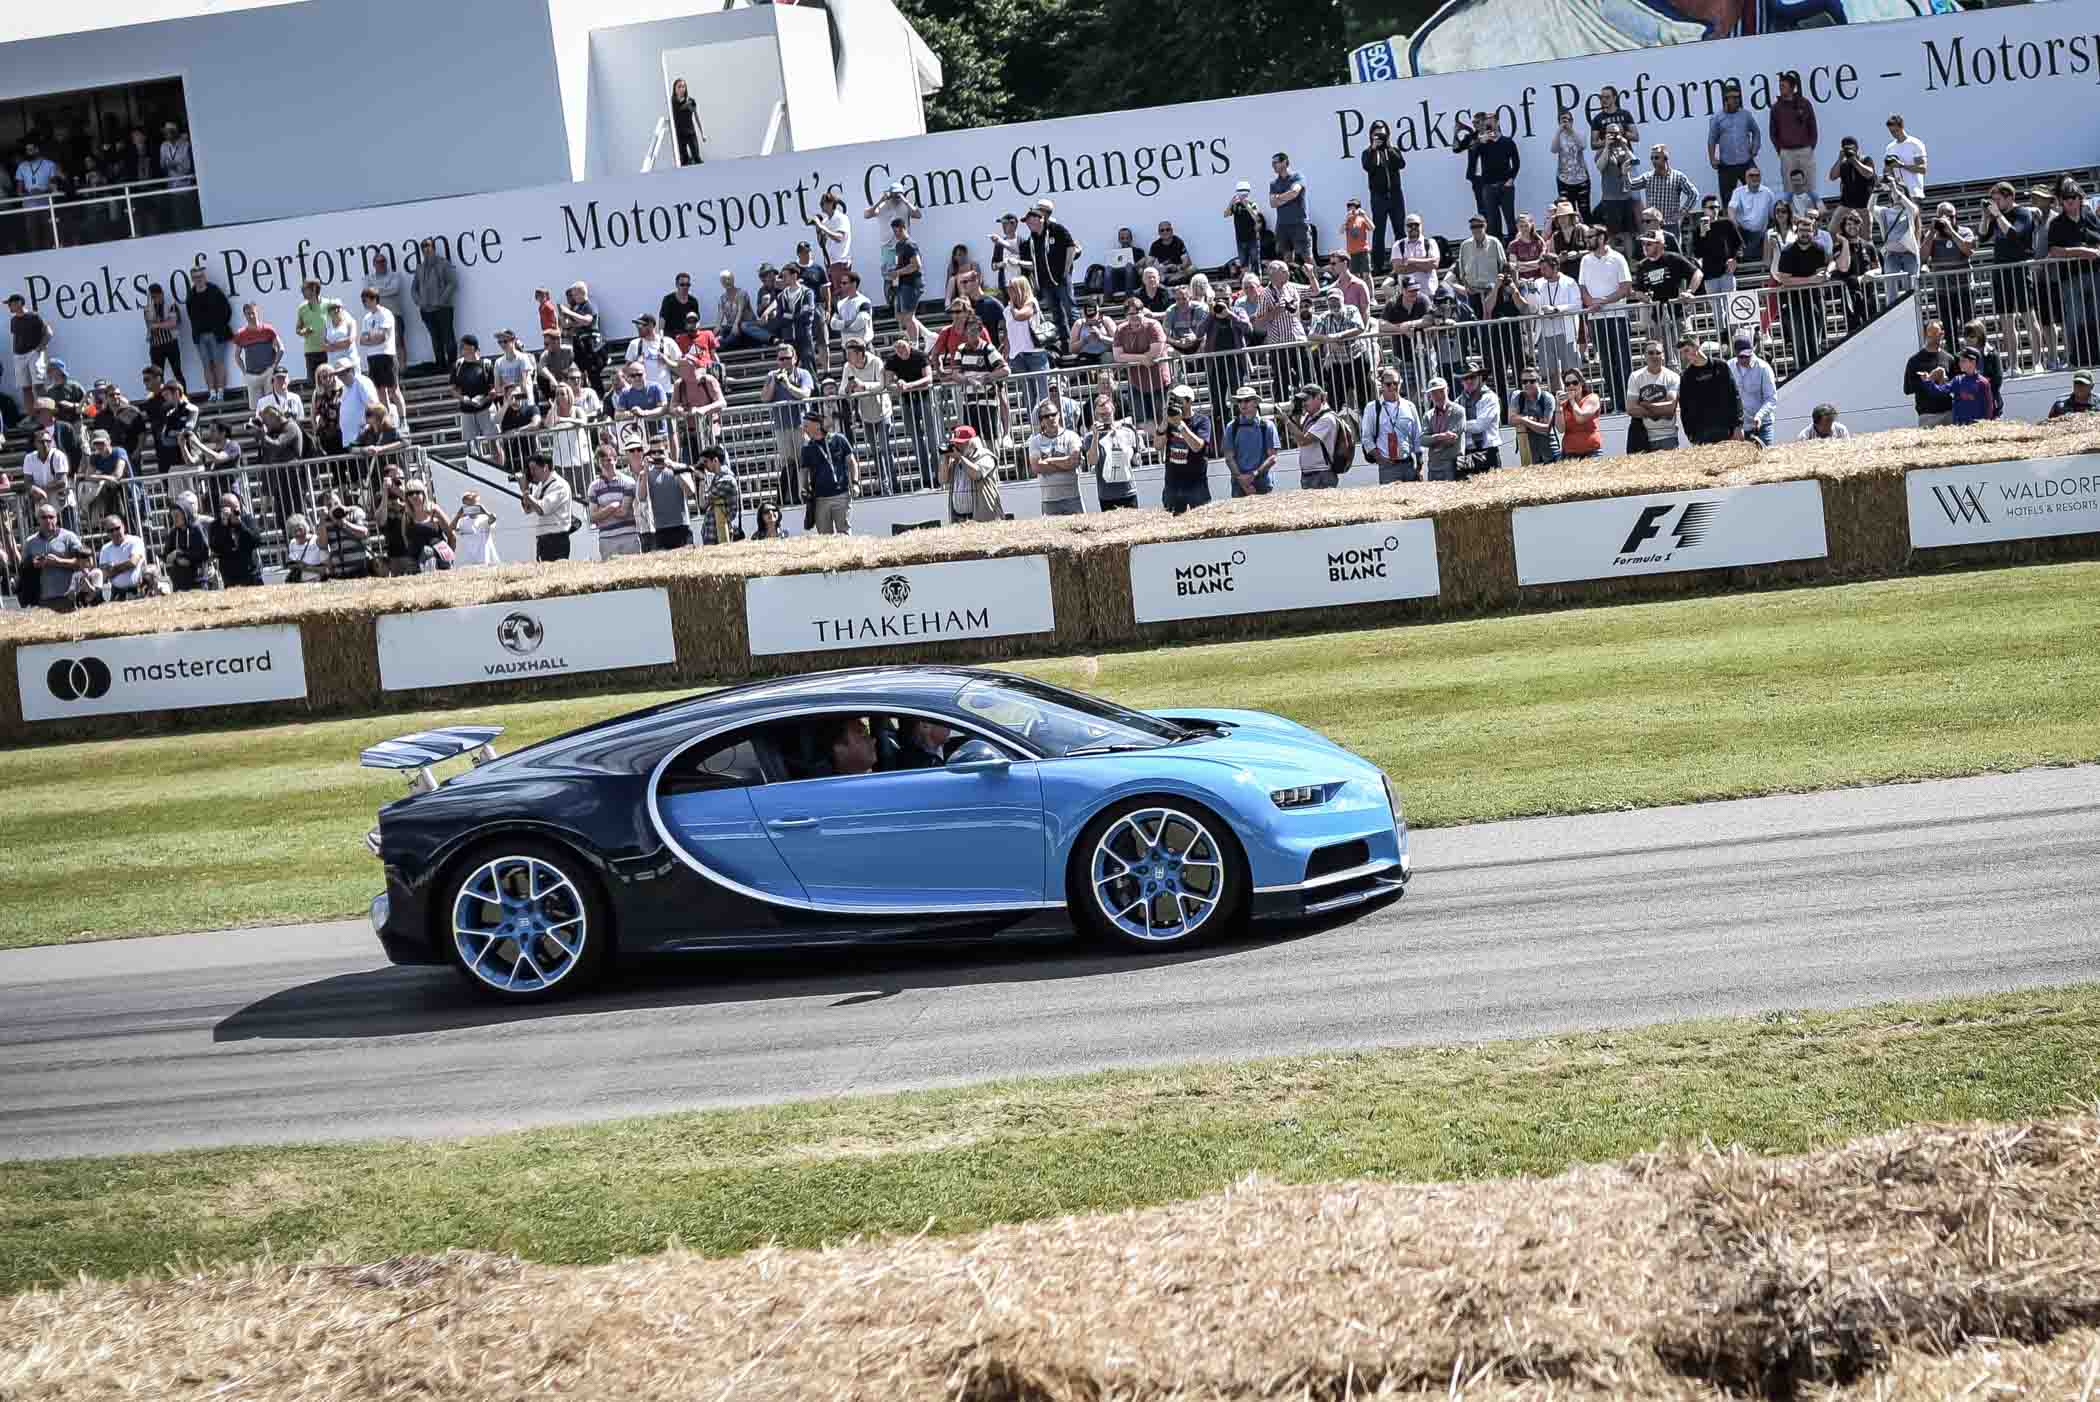 Goodwood Festival of Speed x Montblanc - photo report - 19